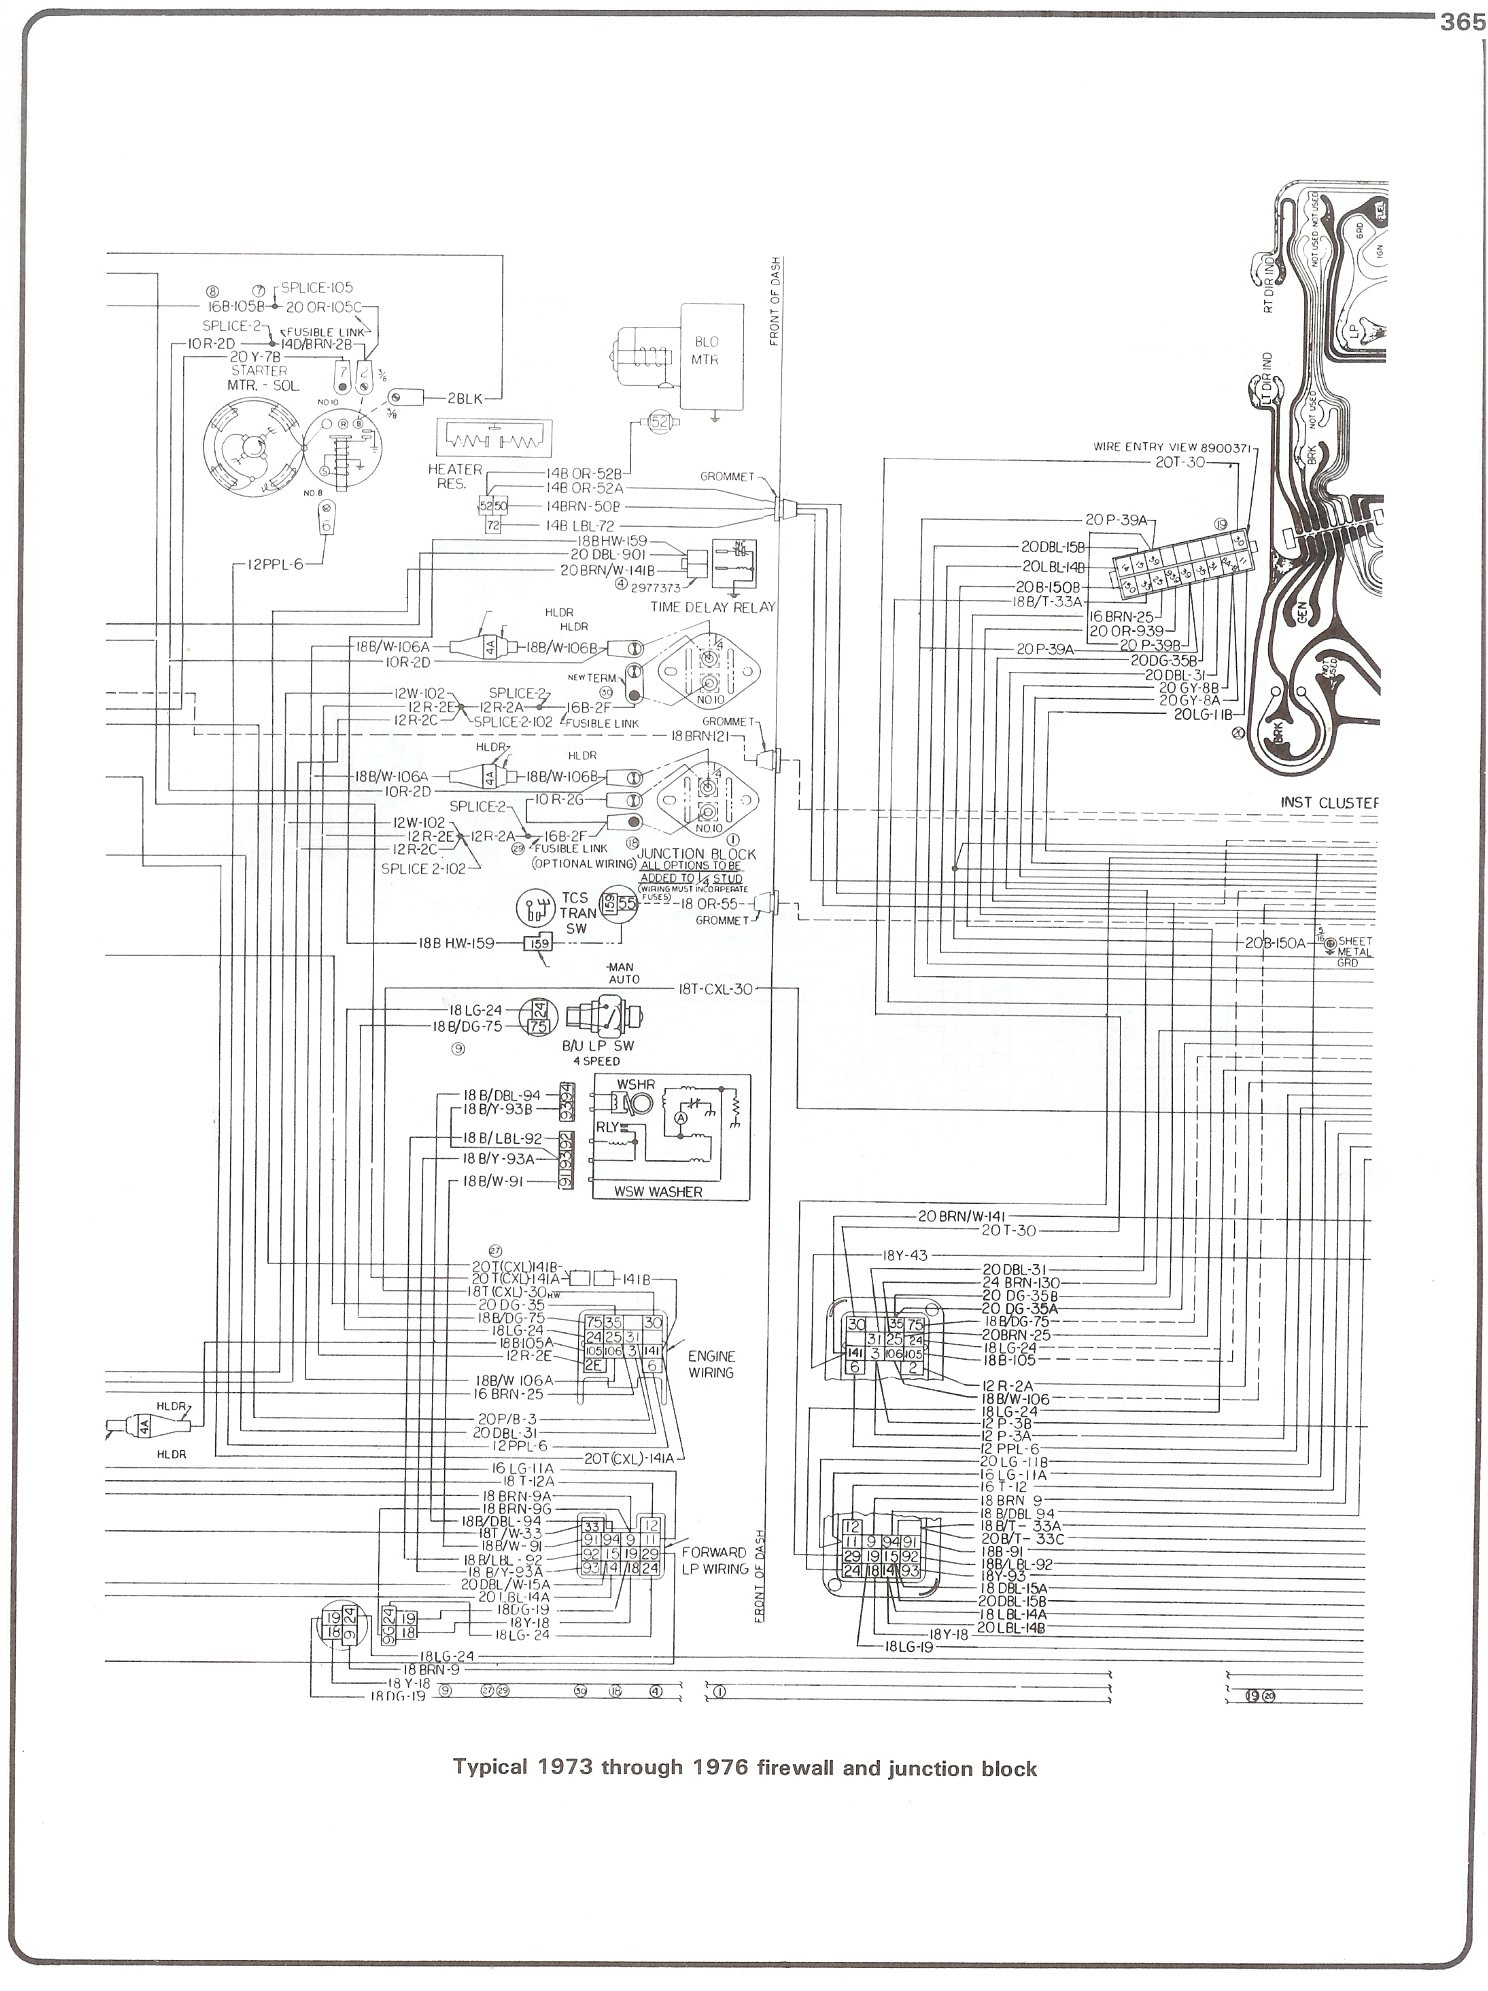 complete 73 87 wiring diagrams rh forum 73 87chevytrucks com 1997 Chevy Blazer Wiring Diagram 1973 Chevy C20 Wiring-Diagram